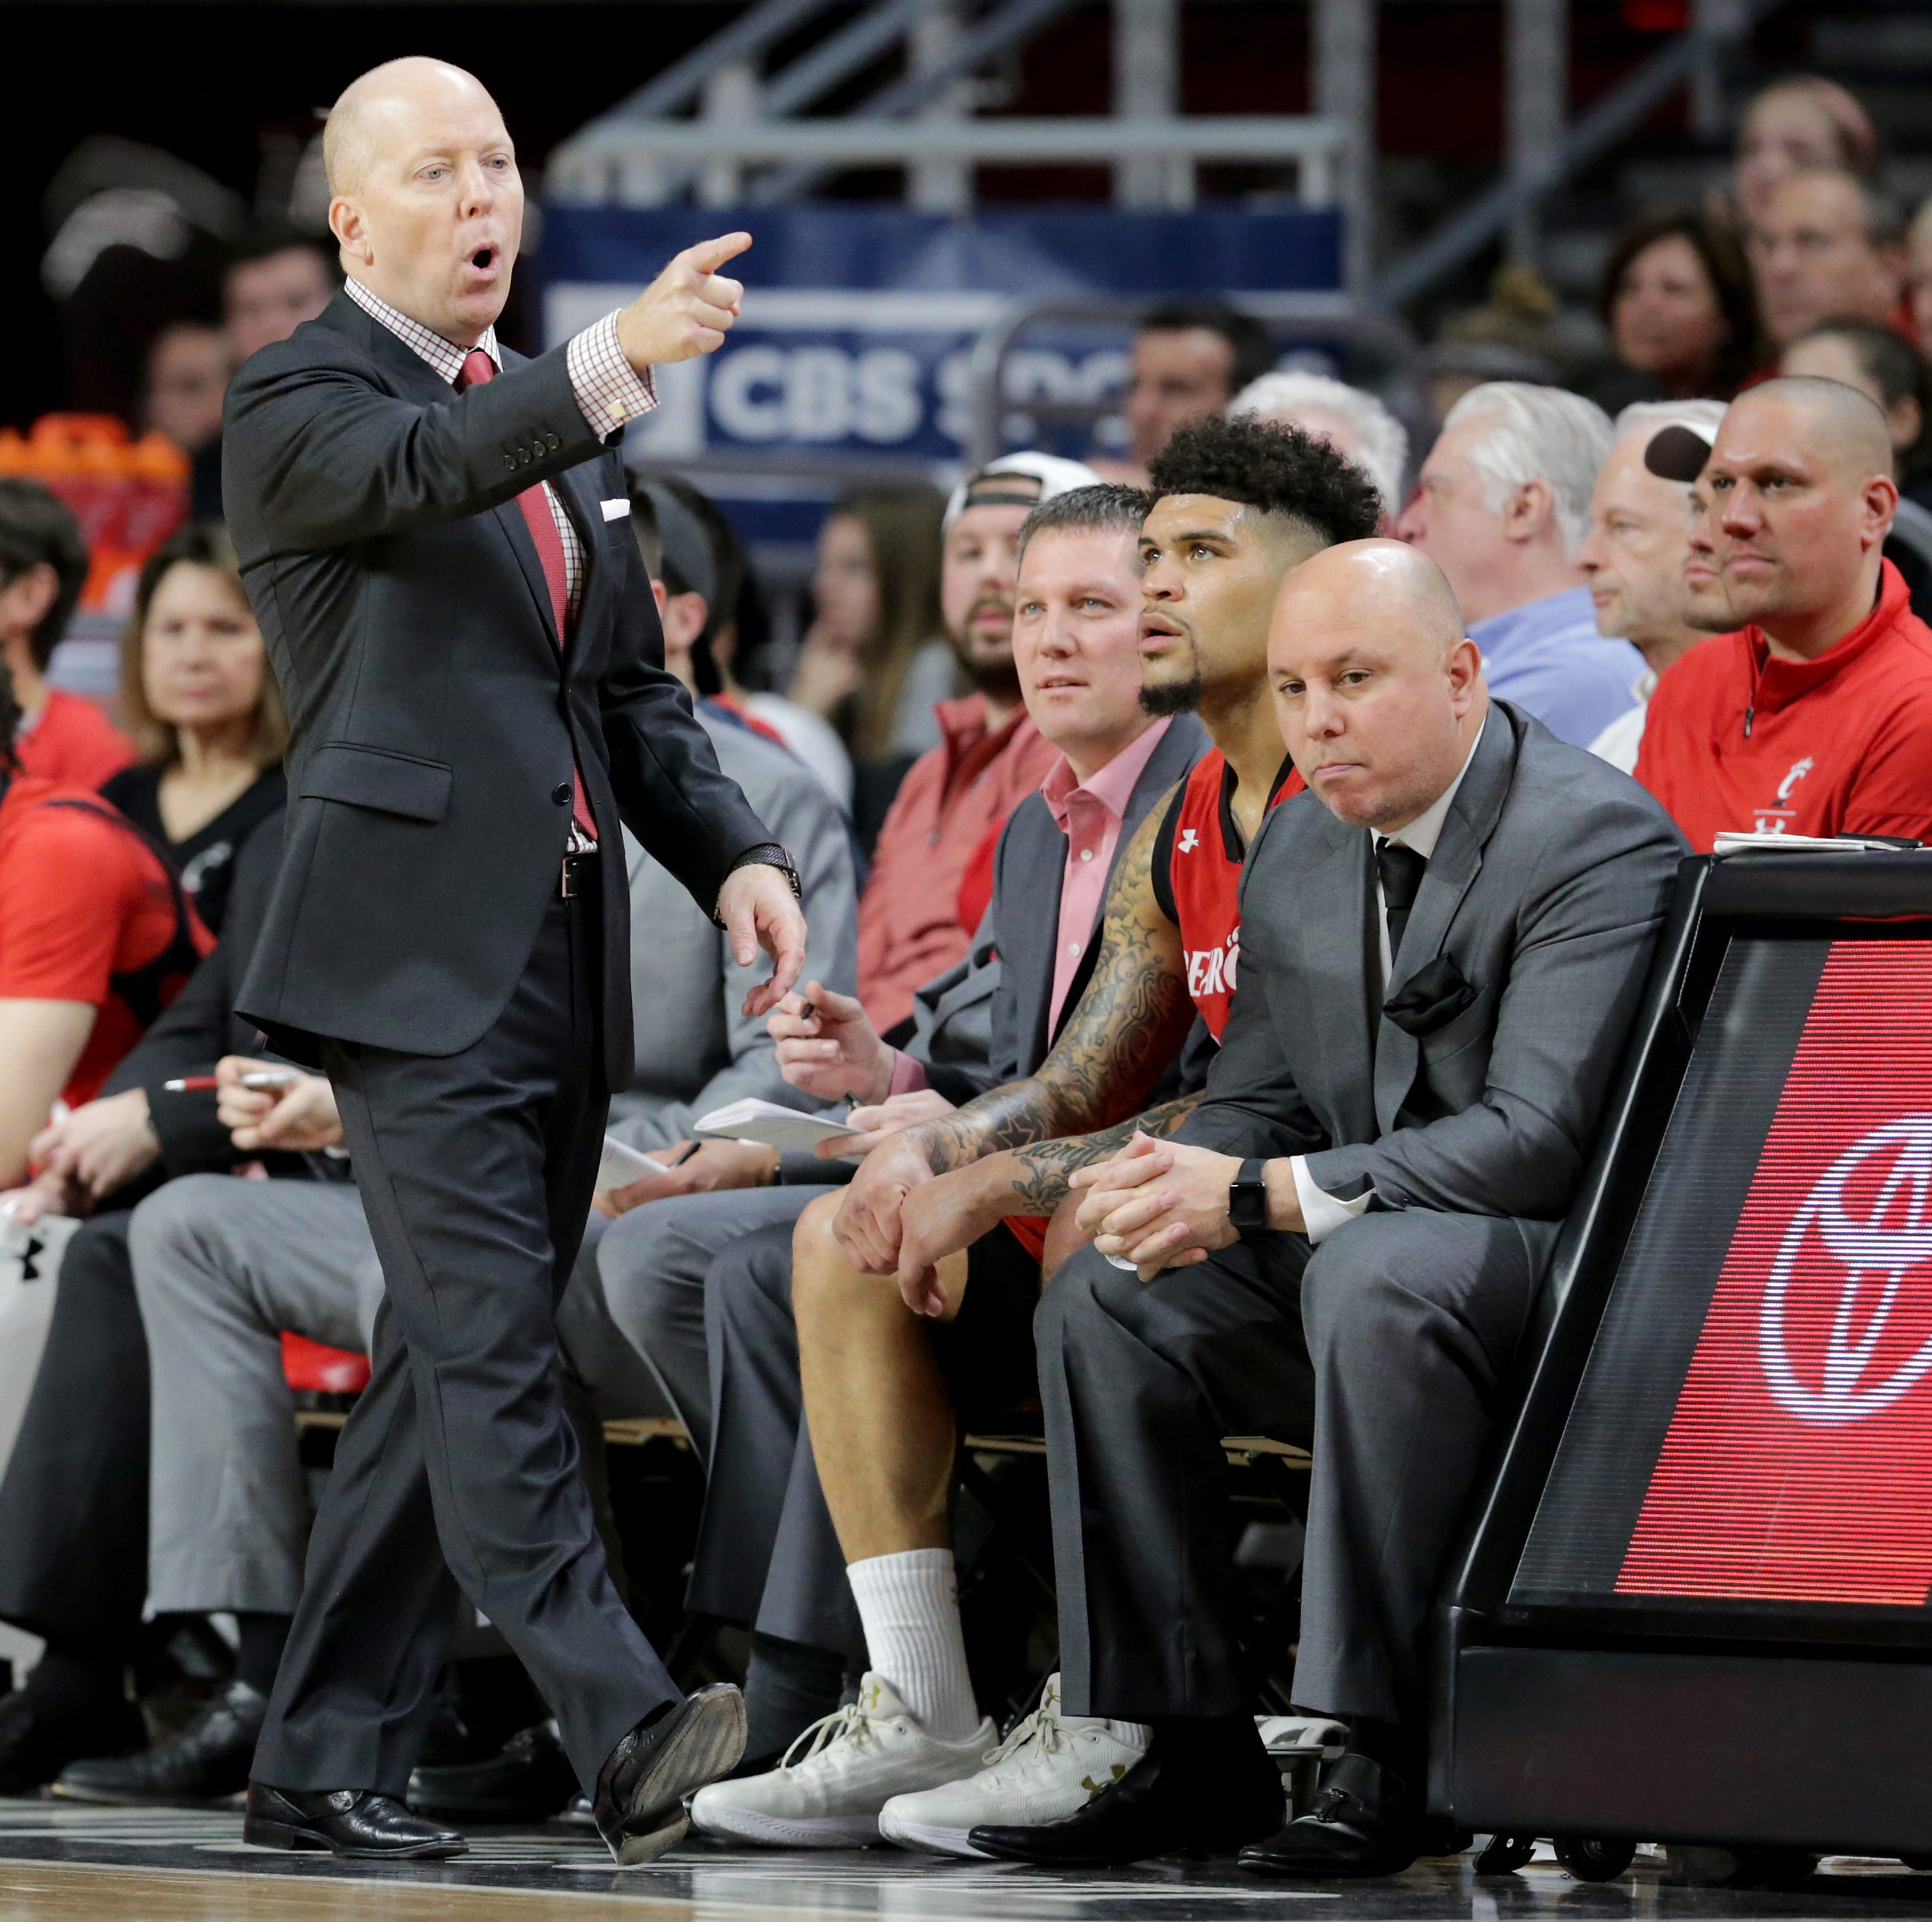 Stadium's Goodman predicts Virginia Tech hires Mick Cronin if UCLA gets Jamie Dixon